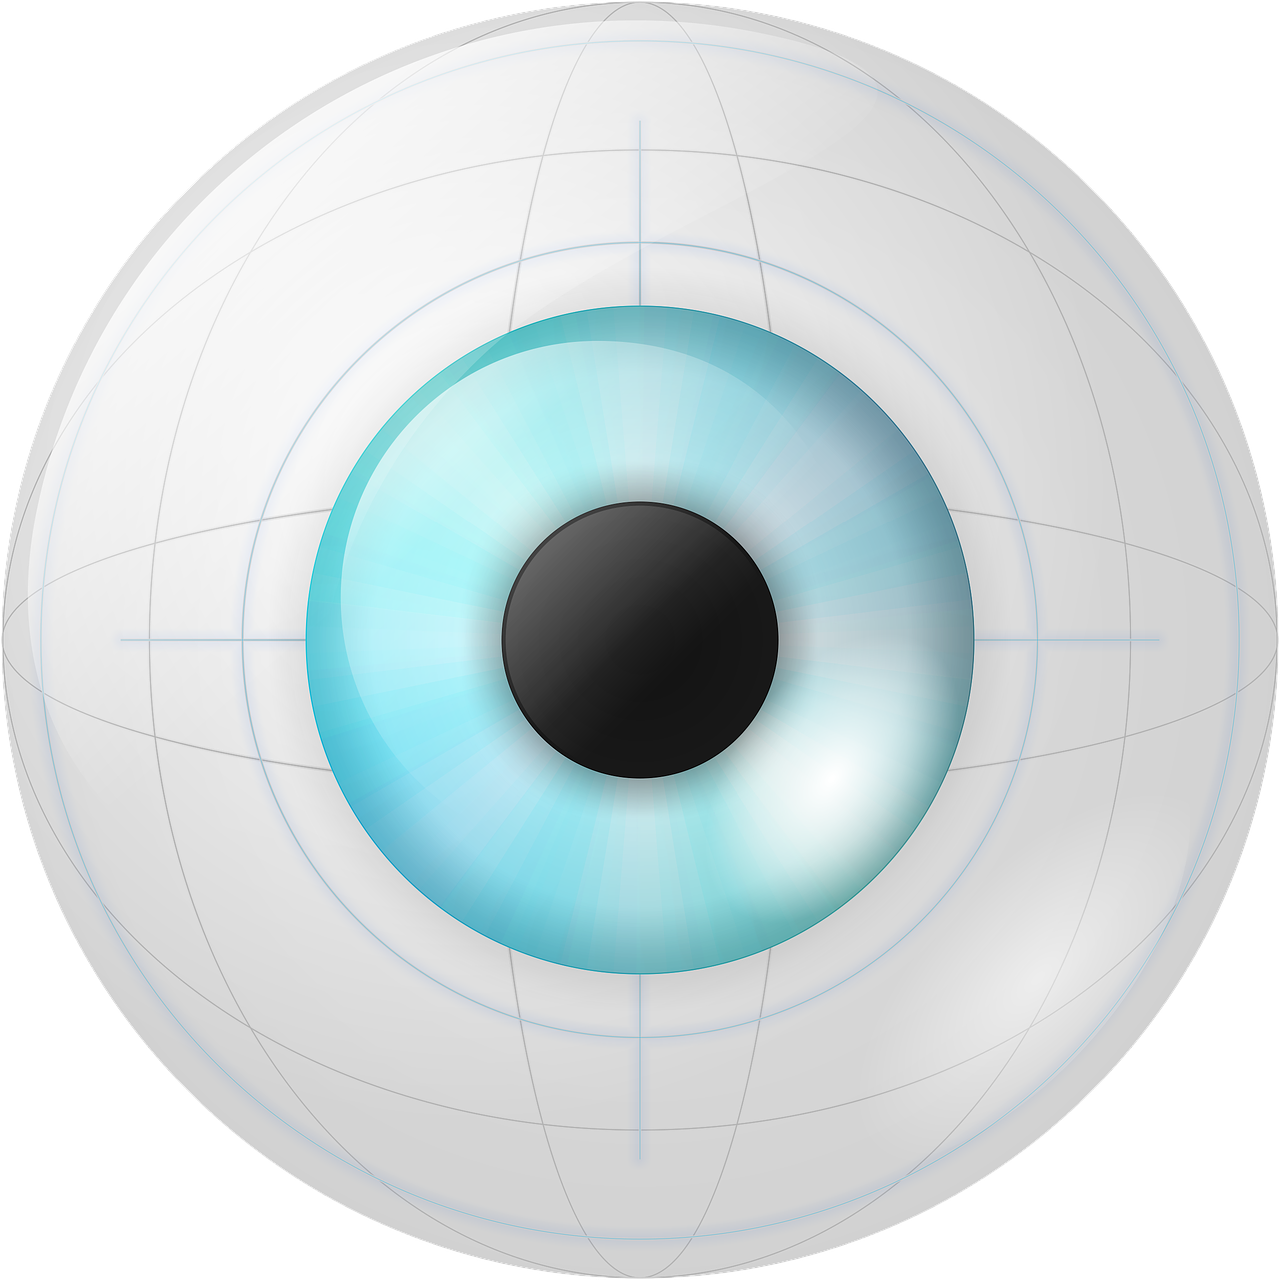 Cyborg eye png. A day in the